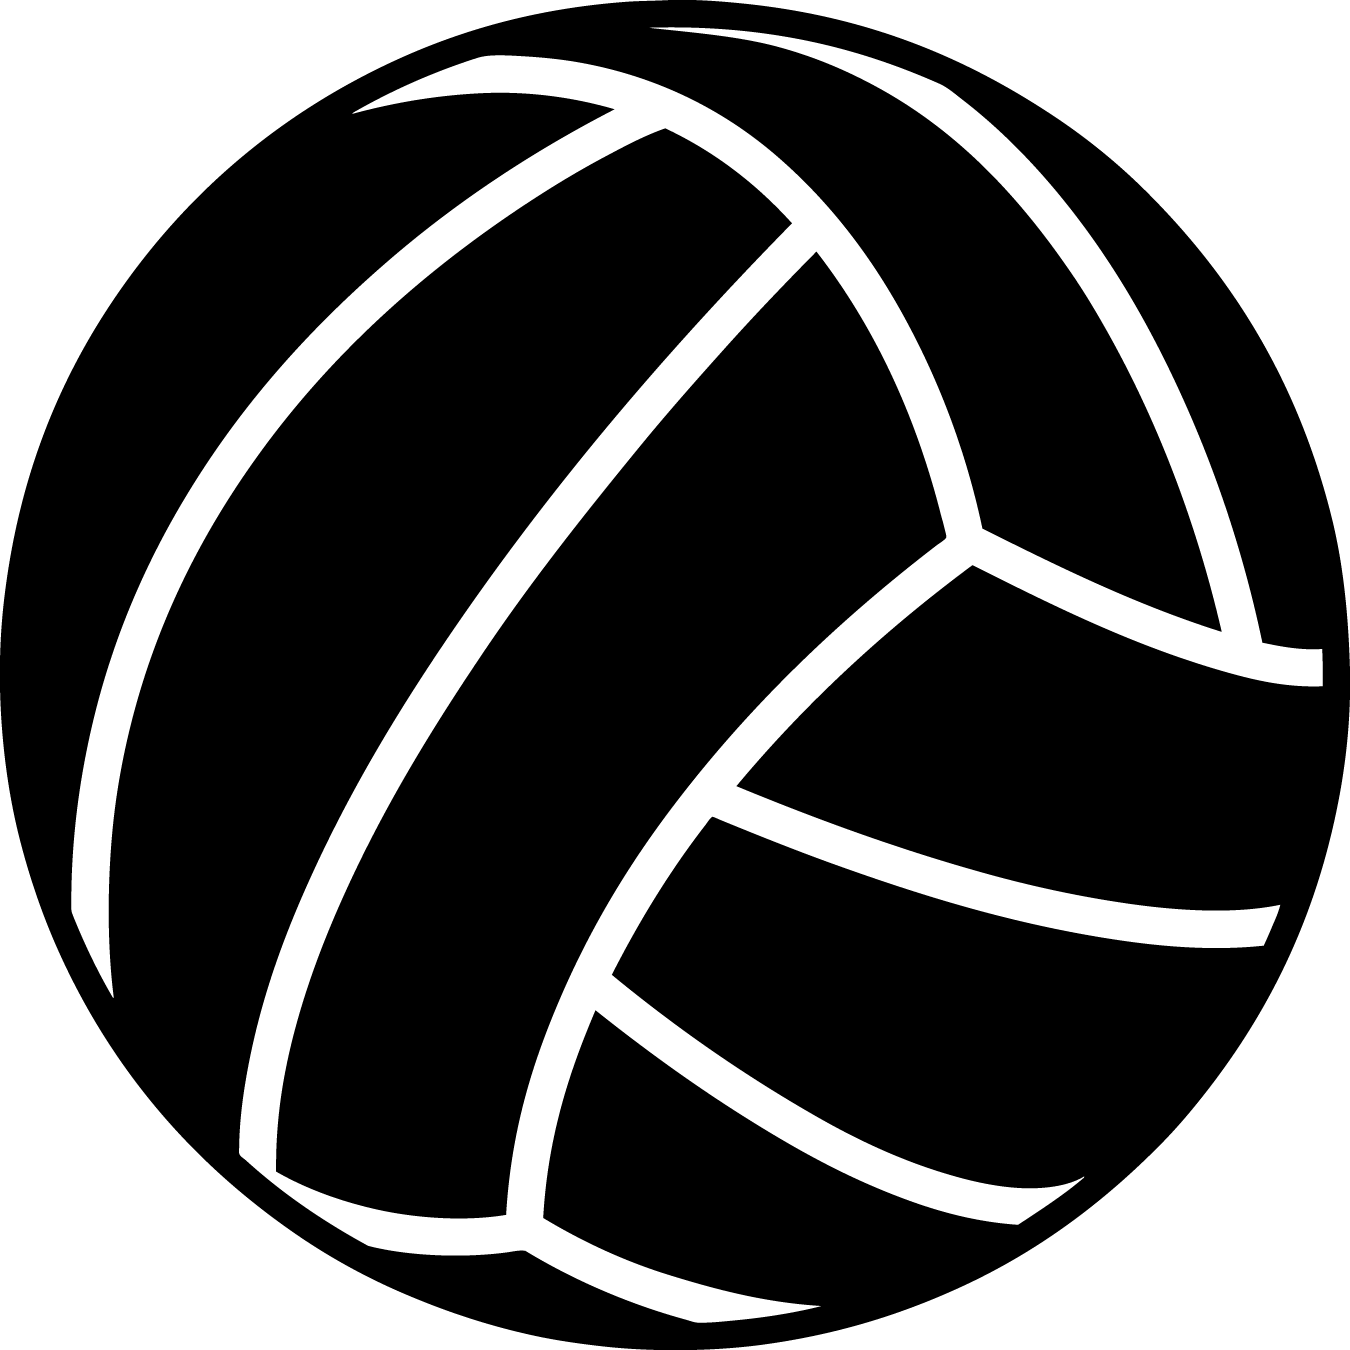 Volleyball Volleyball Volleyball Wallpaper Png